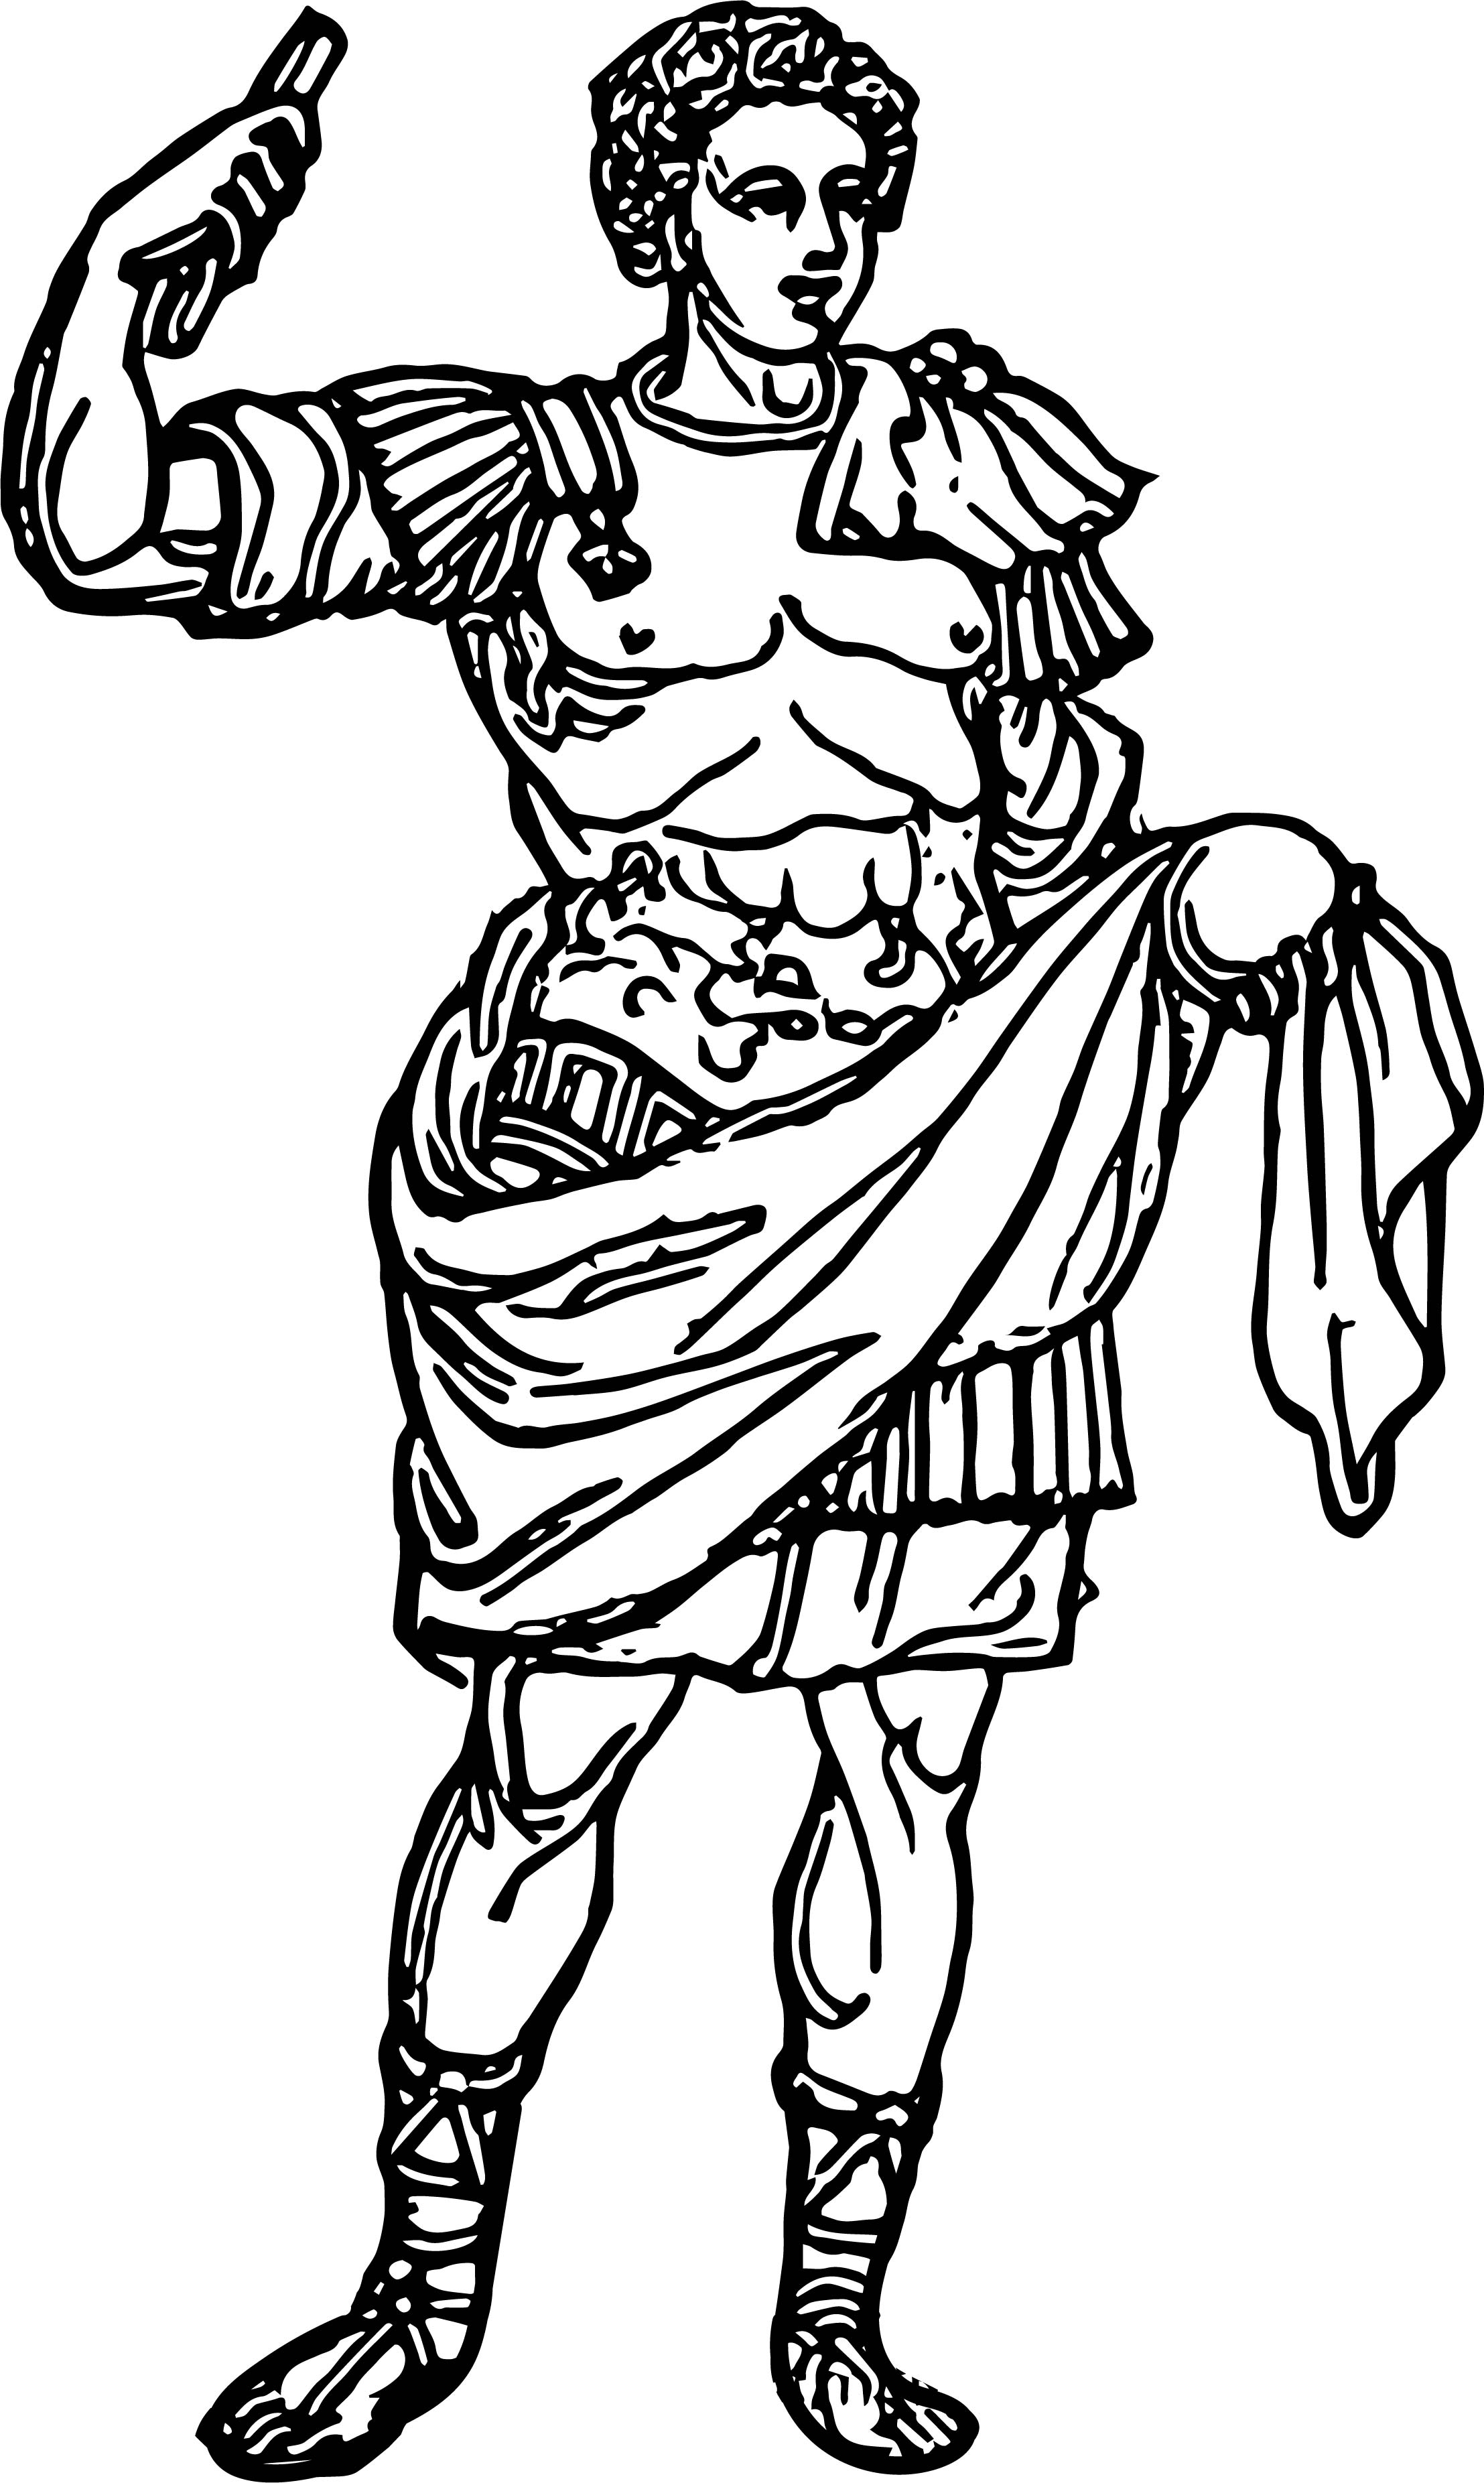 ancient roman coloring pages | Roman Emperor Man Coloring Page | Wecoloringpage.com